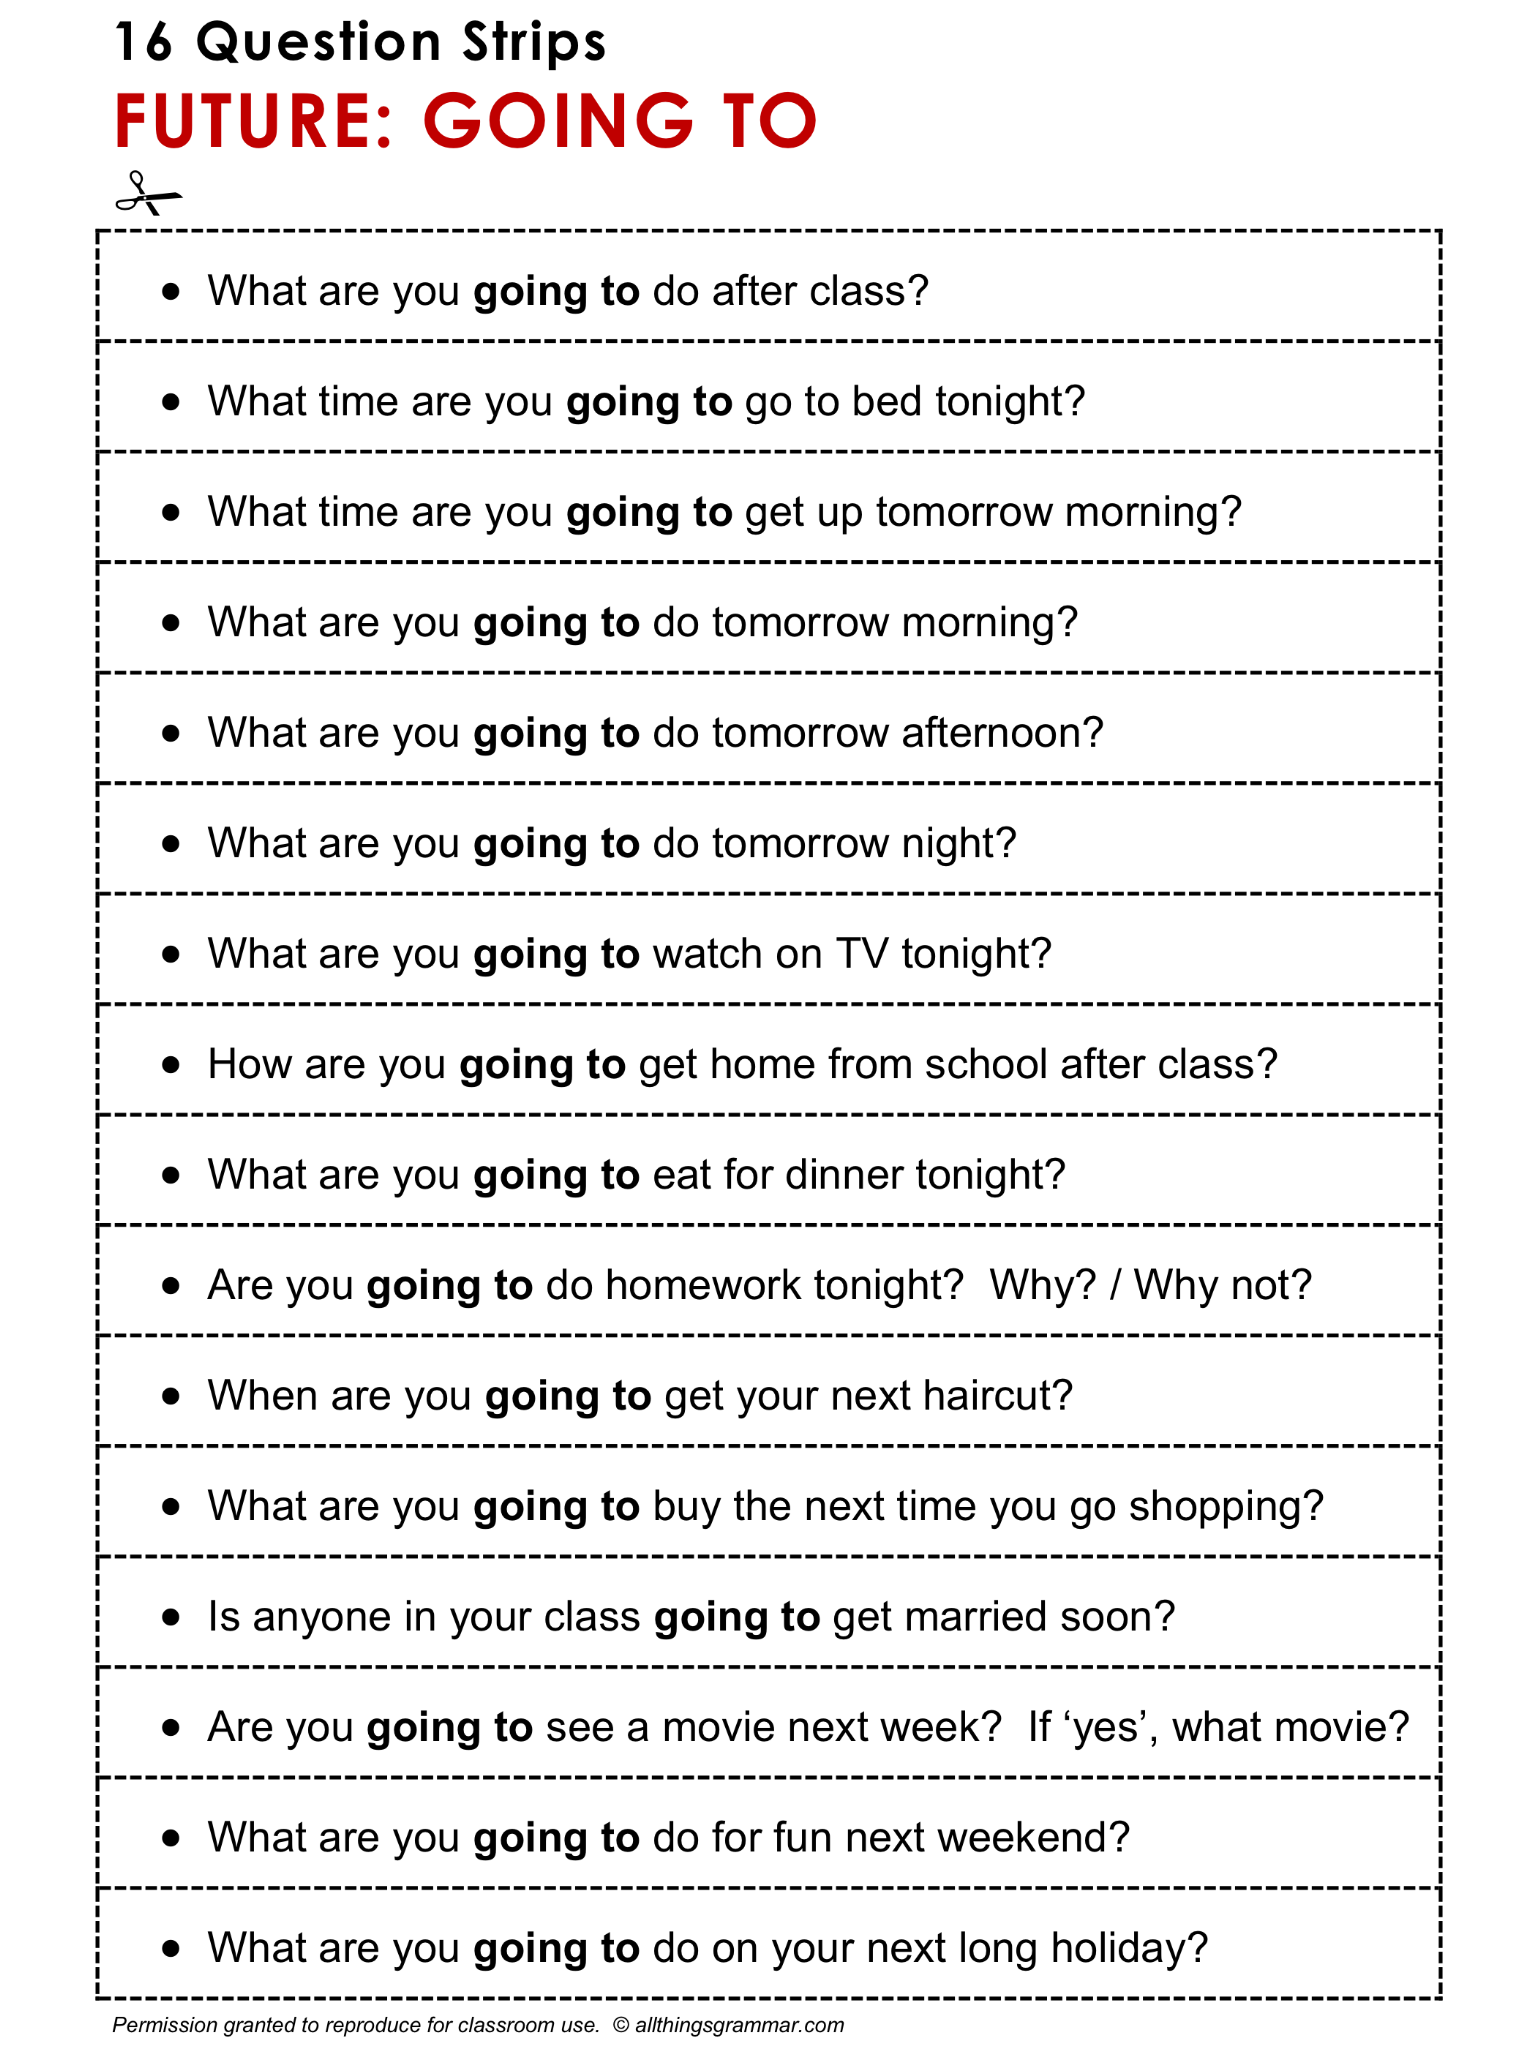 English Grammar Discussion Practice Future Going To 16 Question Strips